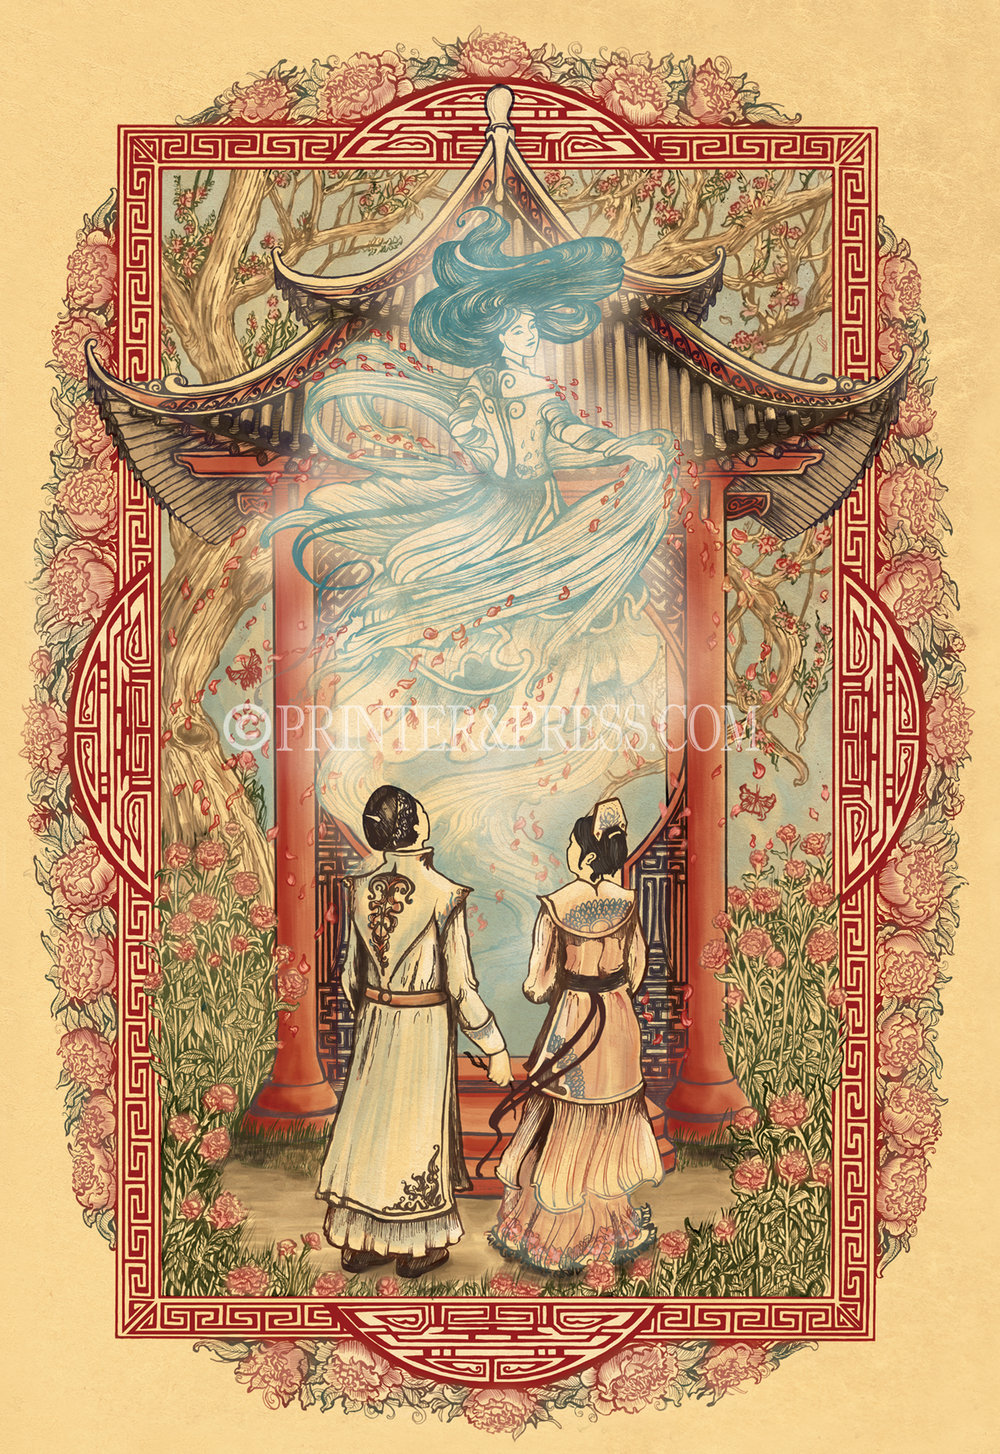 This illustration captures the most emotional moment from the novel, Peony in Love, when the ghost maiden is finally set free and blesses her former fiancé and friend. It is a tale of love and loss, desire and death. Peony in Love is an intricate original drawing which was ultimately put together using many digital layers.